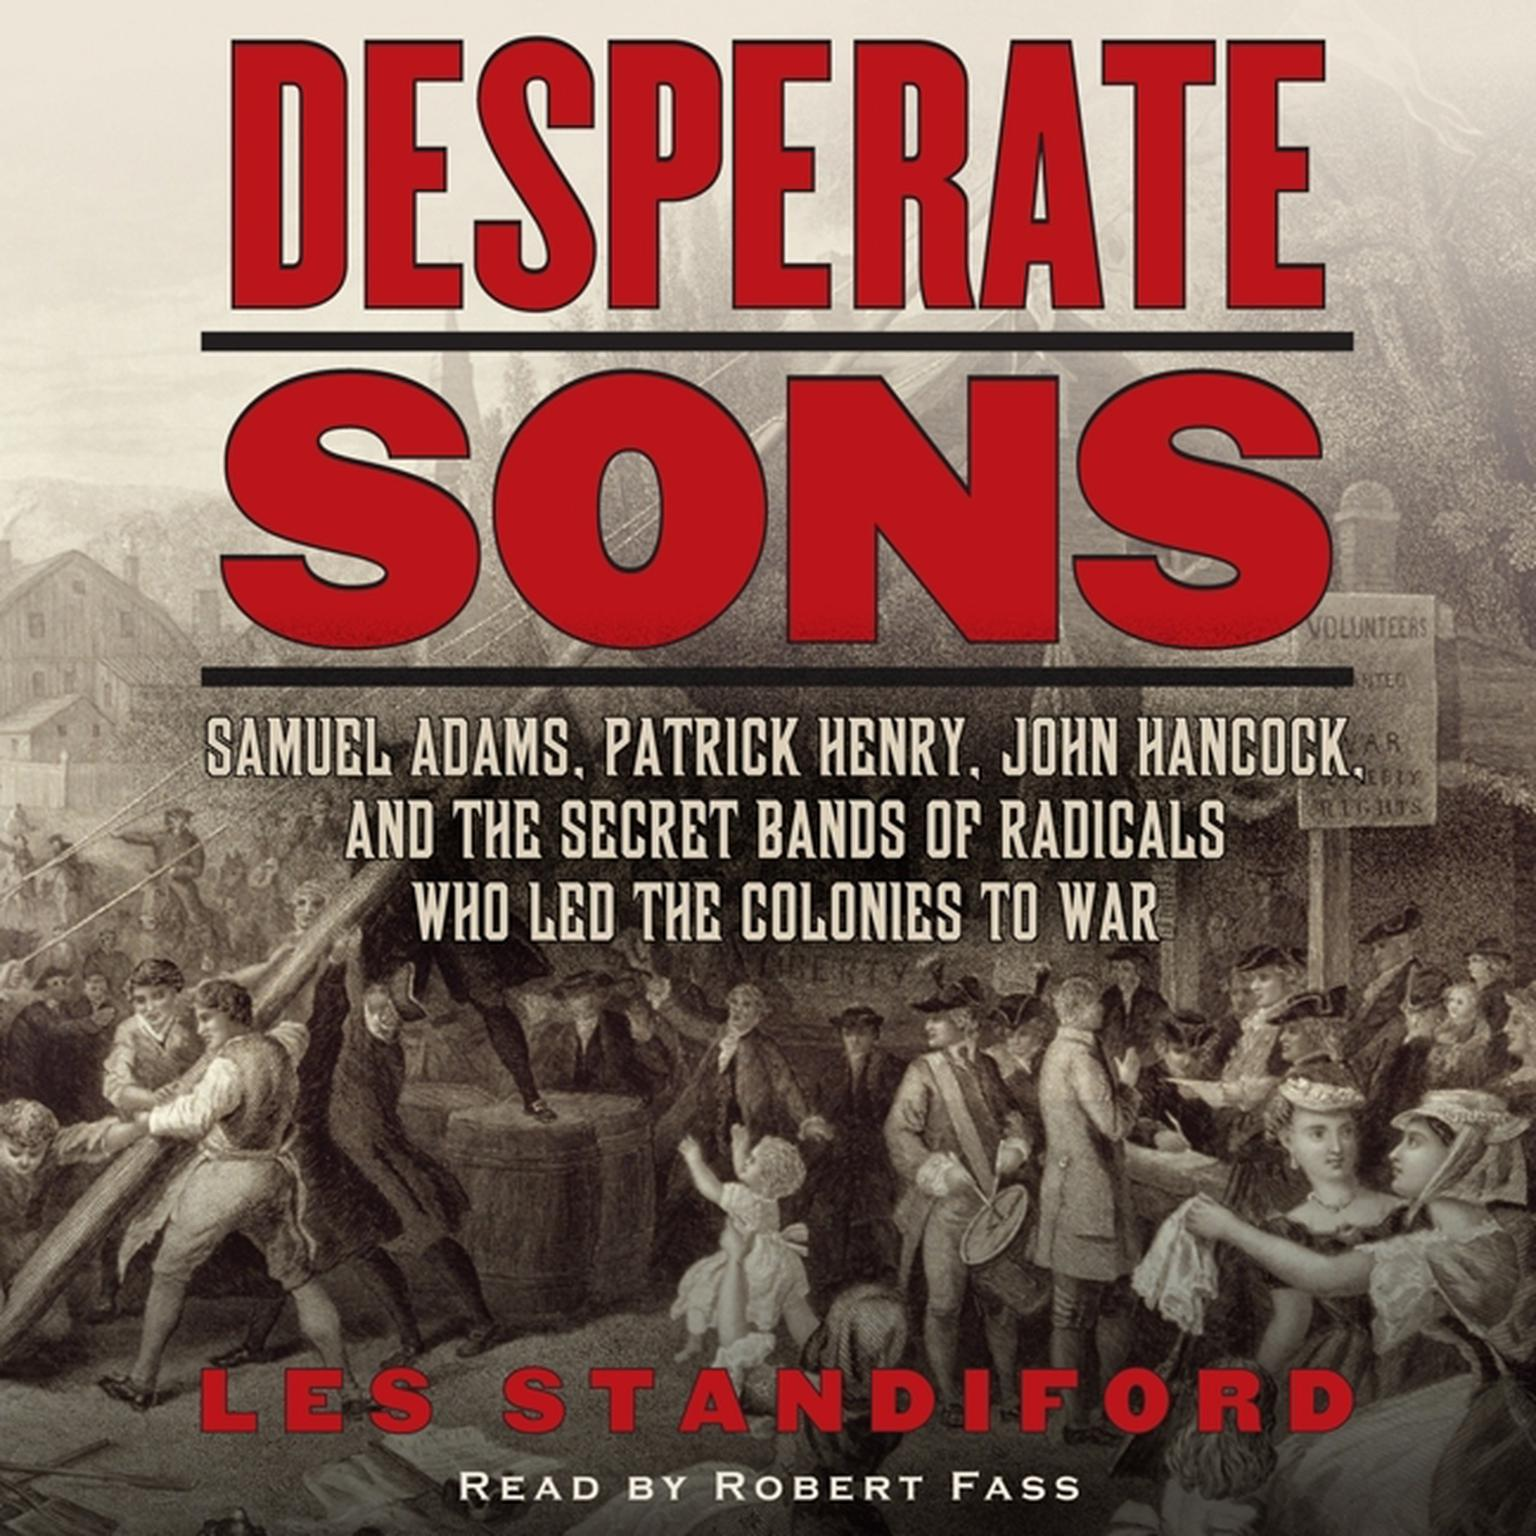 Printable Desperate Sons: Samuel Adams, Patrick Henry, John Hancock, and the Secret Bands of Radicals Who Led the Colonies to War Audiobook Cover Art